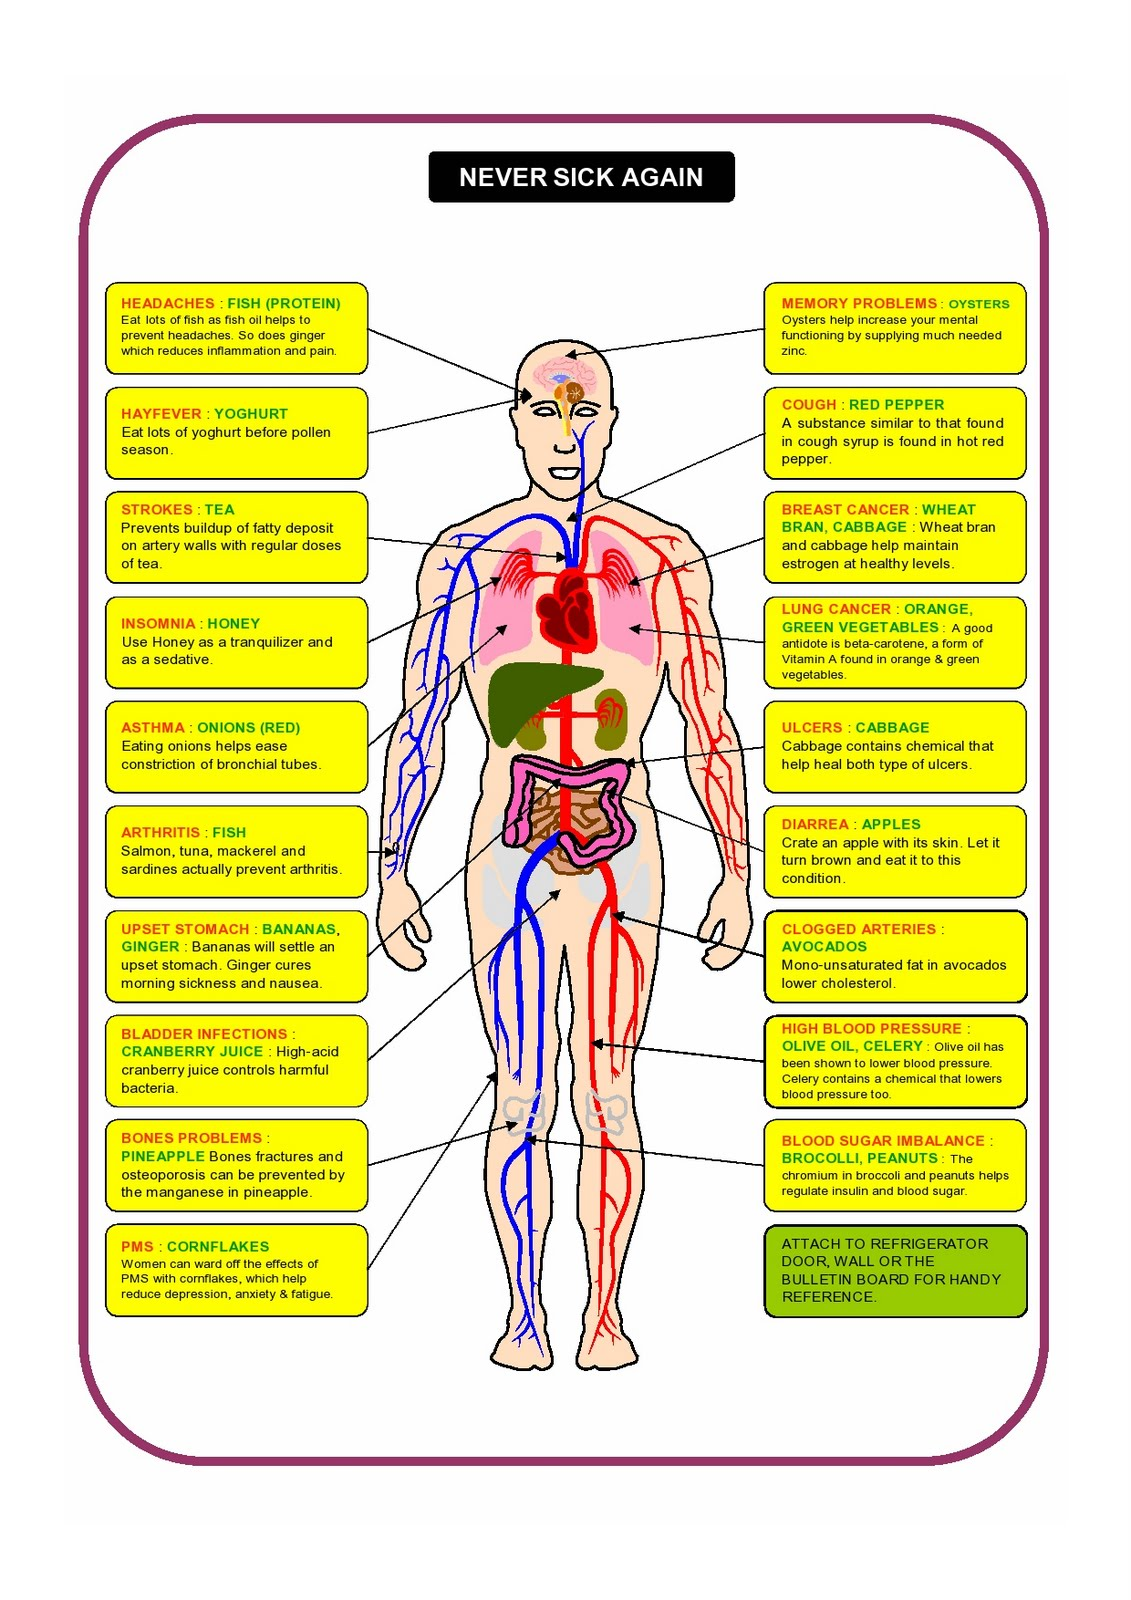 hight resolution of never sick again chart never sick again diagram health care tips health facts